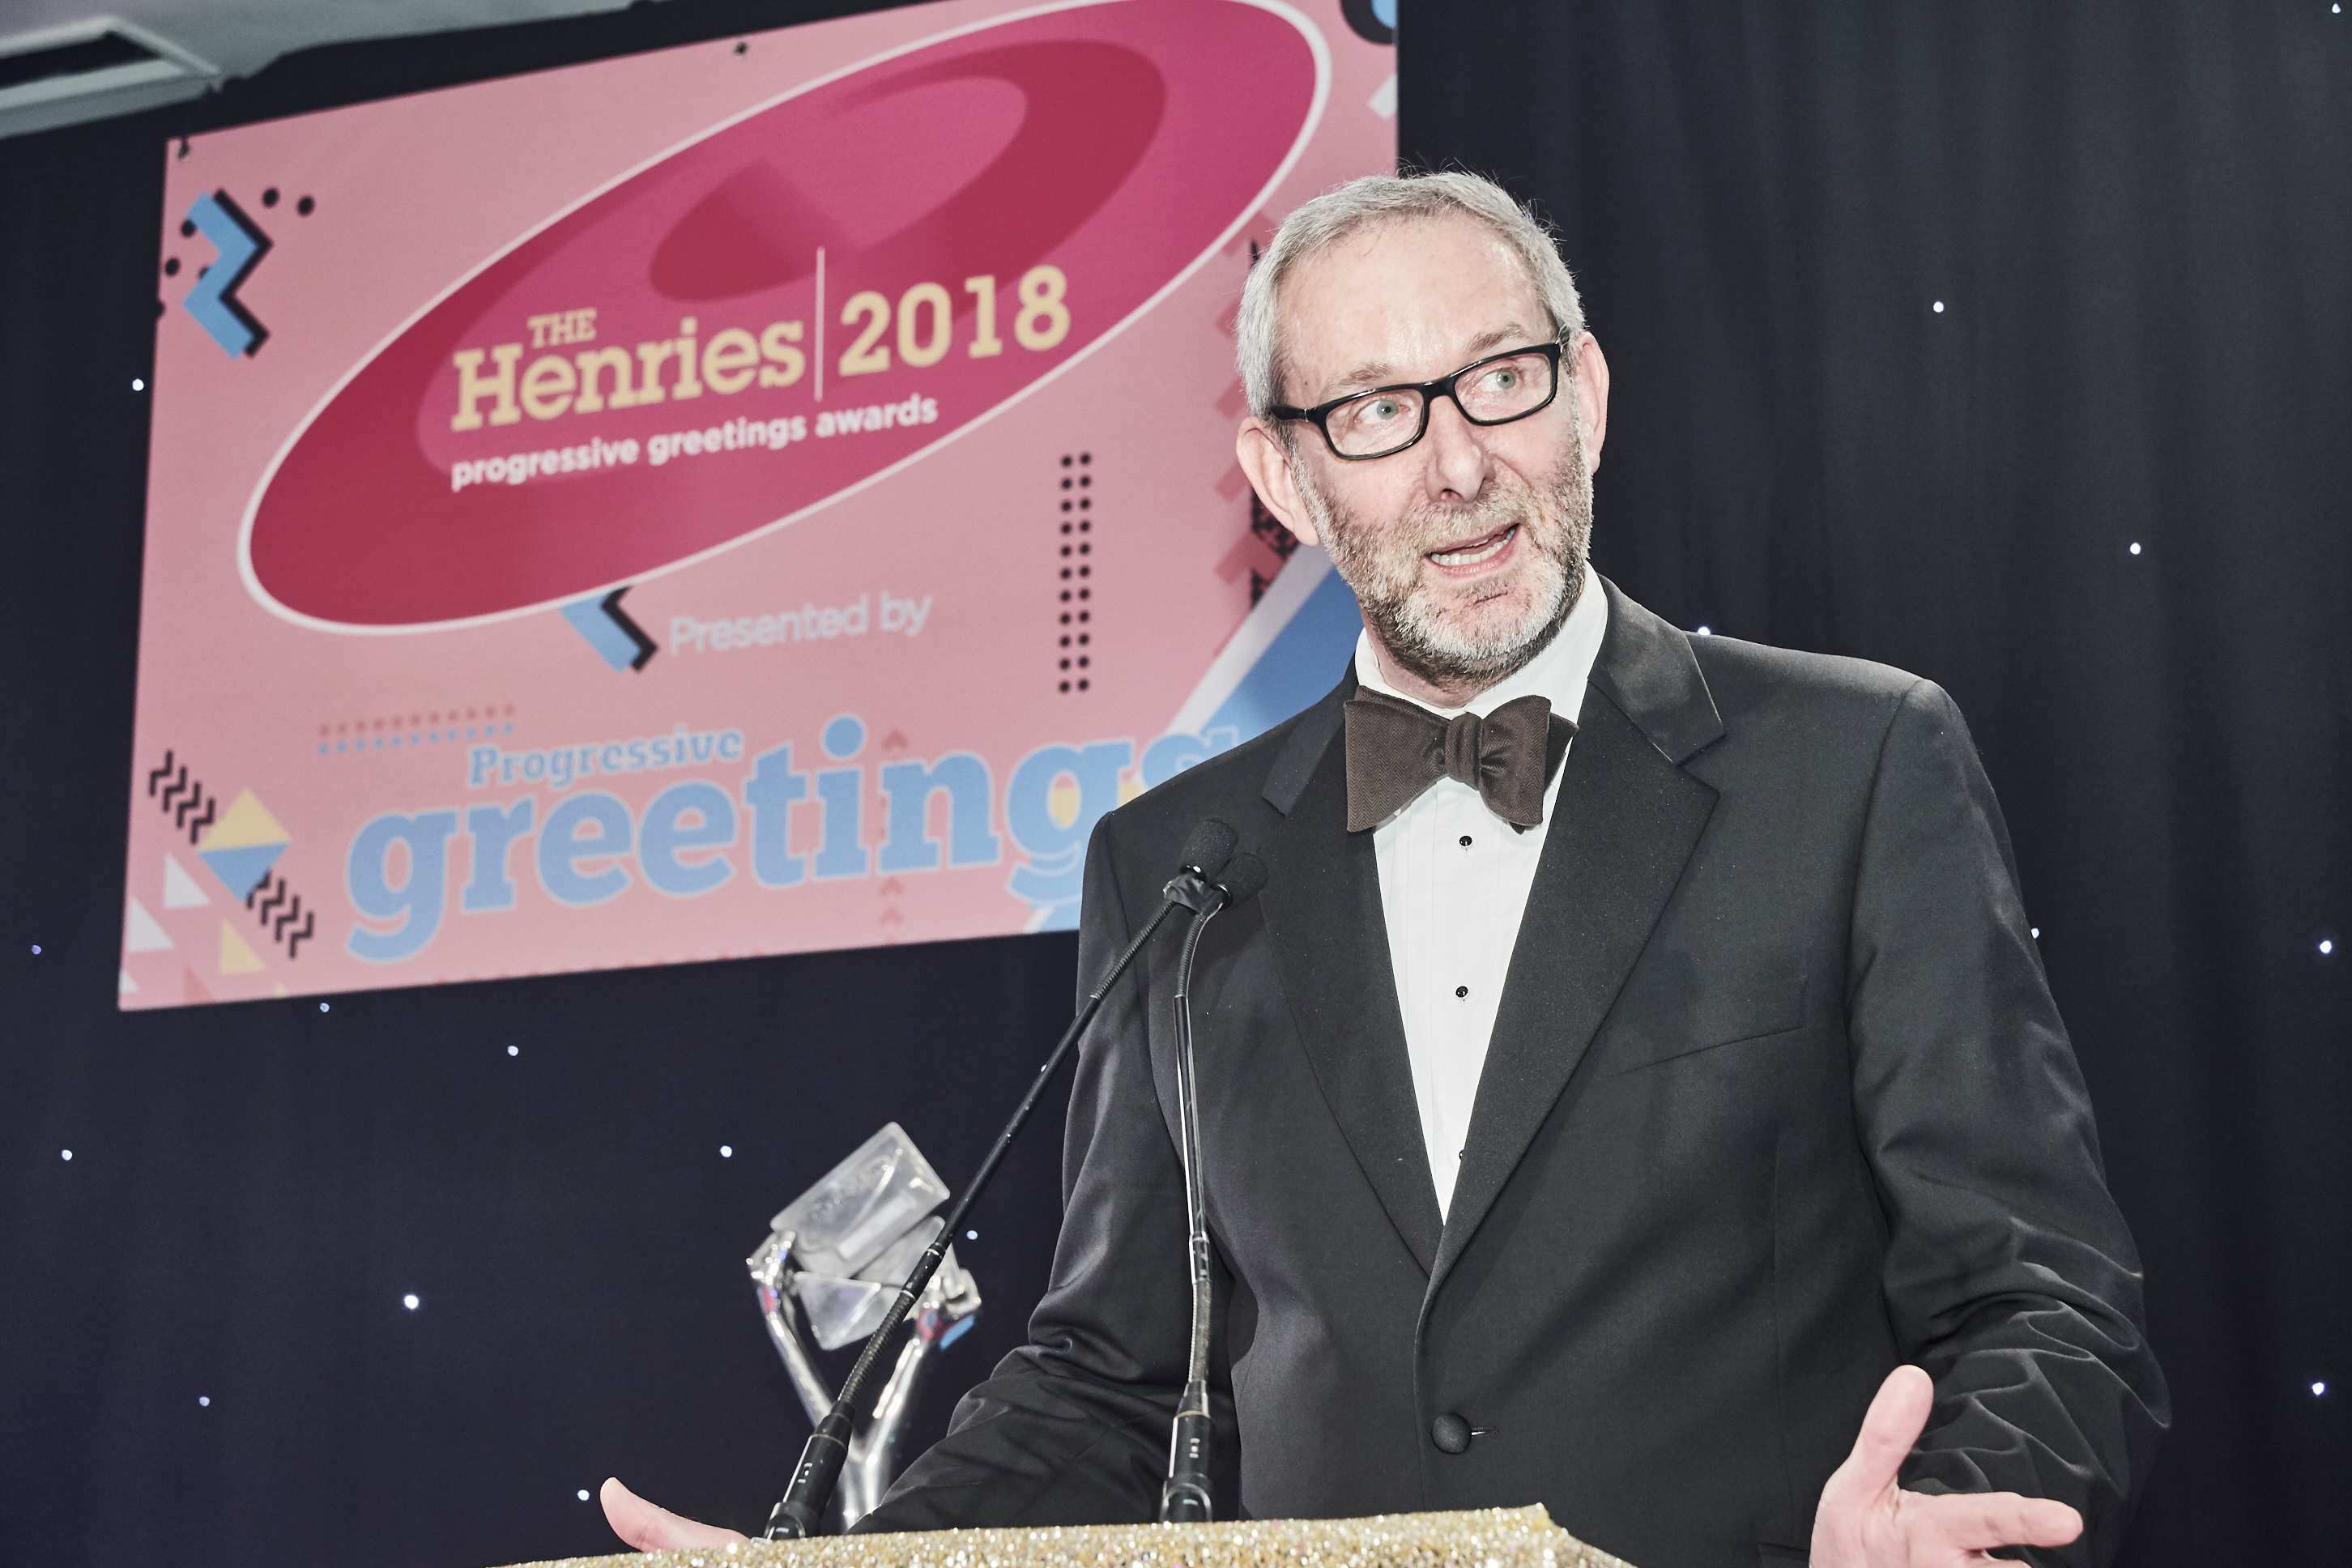 Above: Ged Mace, md of The Art File, who was presented with the Honorary Achievement Award at The Henries last year will share a wealth of information with attendees.